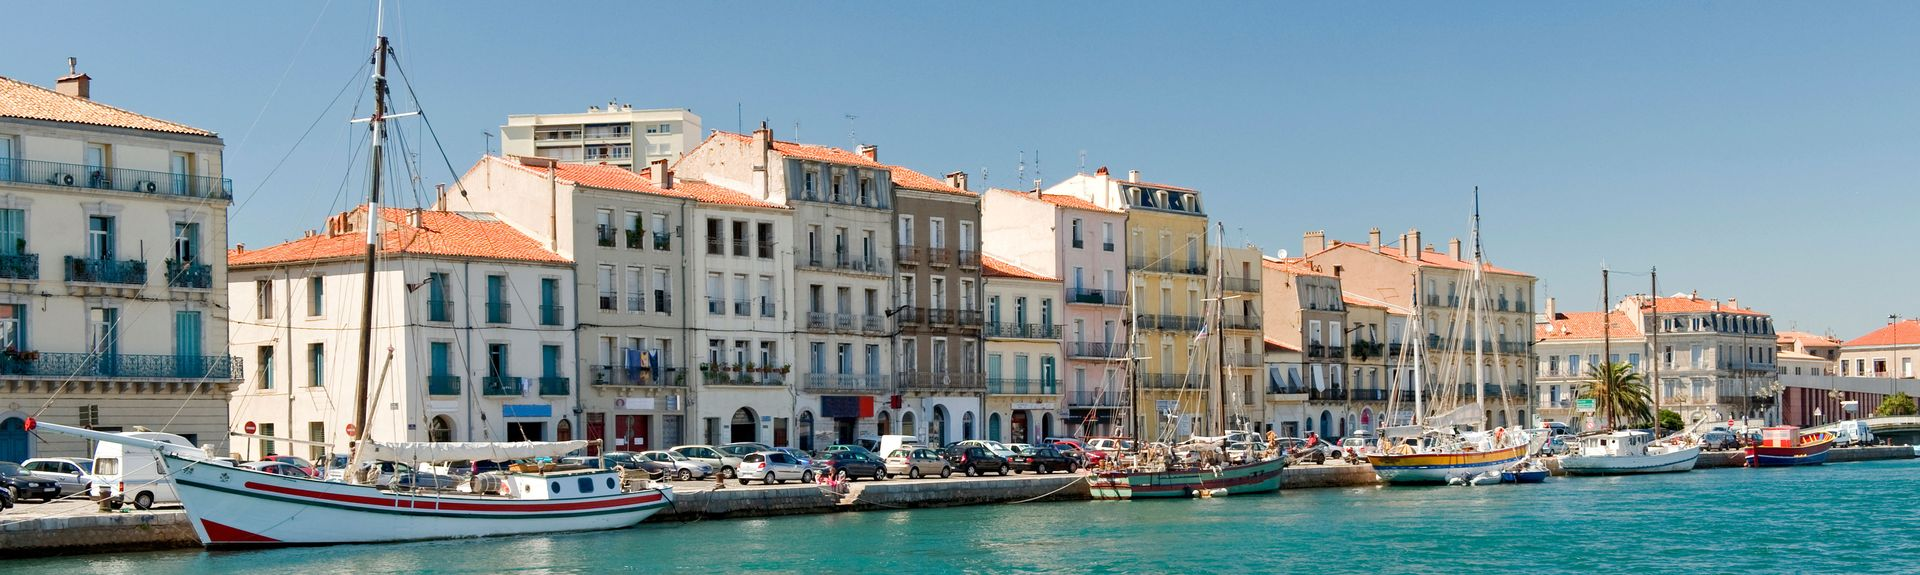 Sète, Herault (department), France